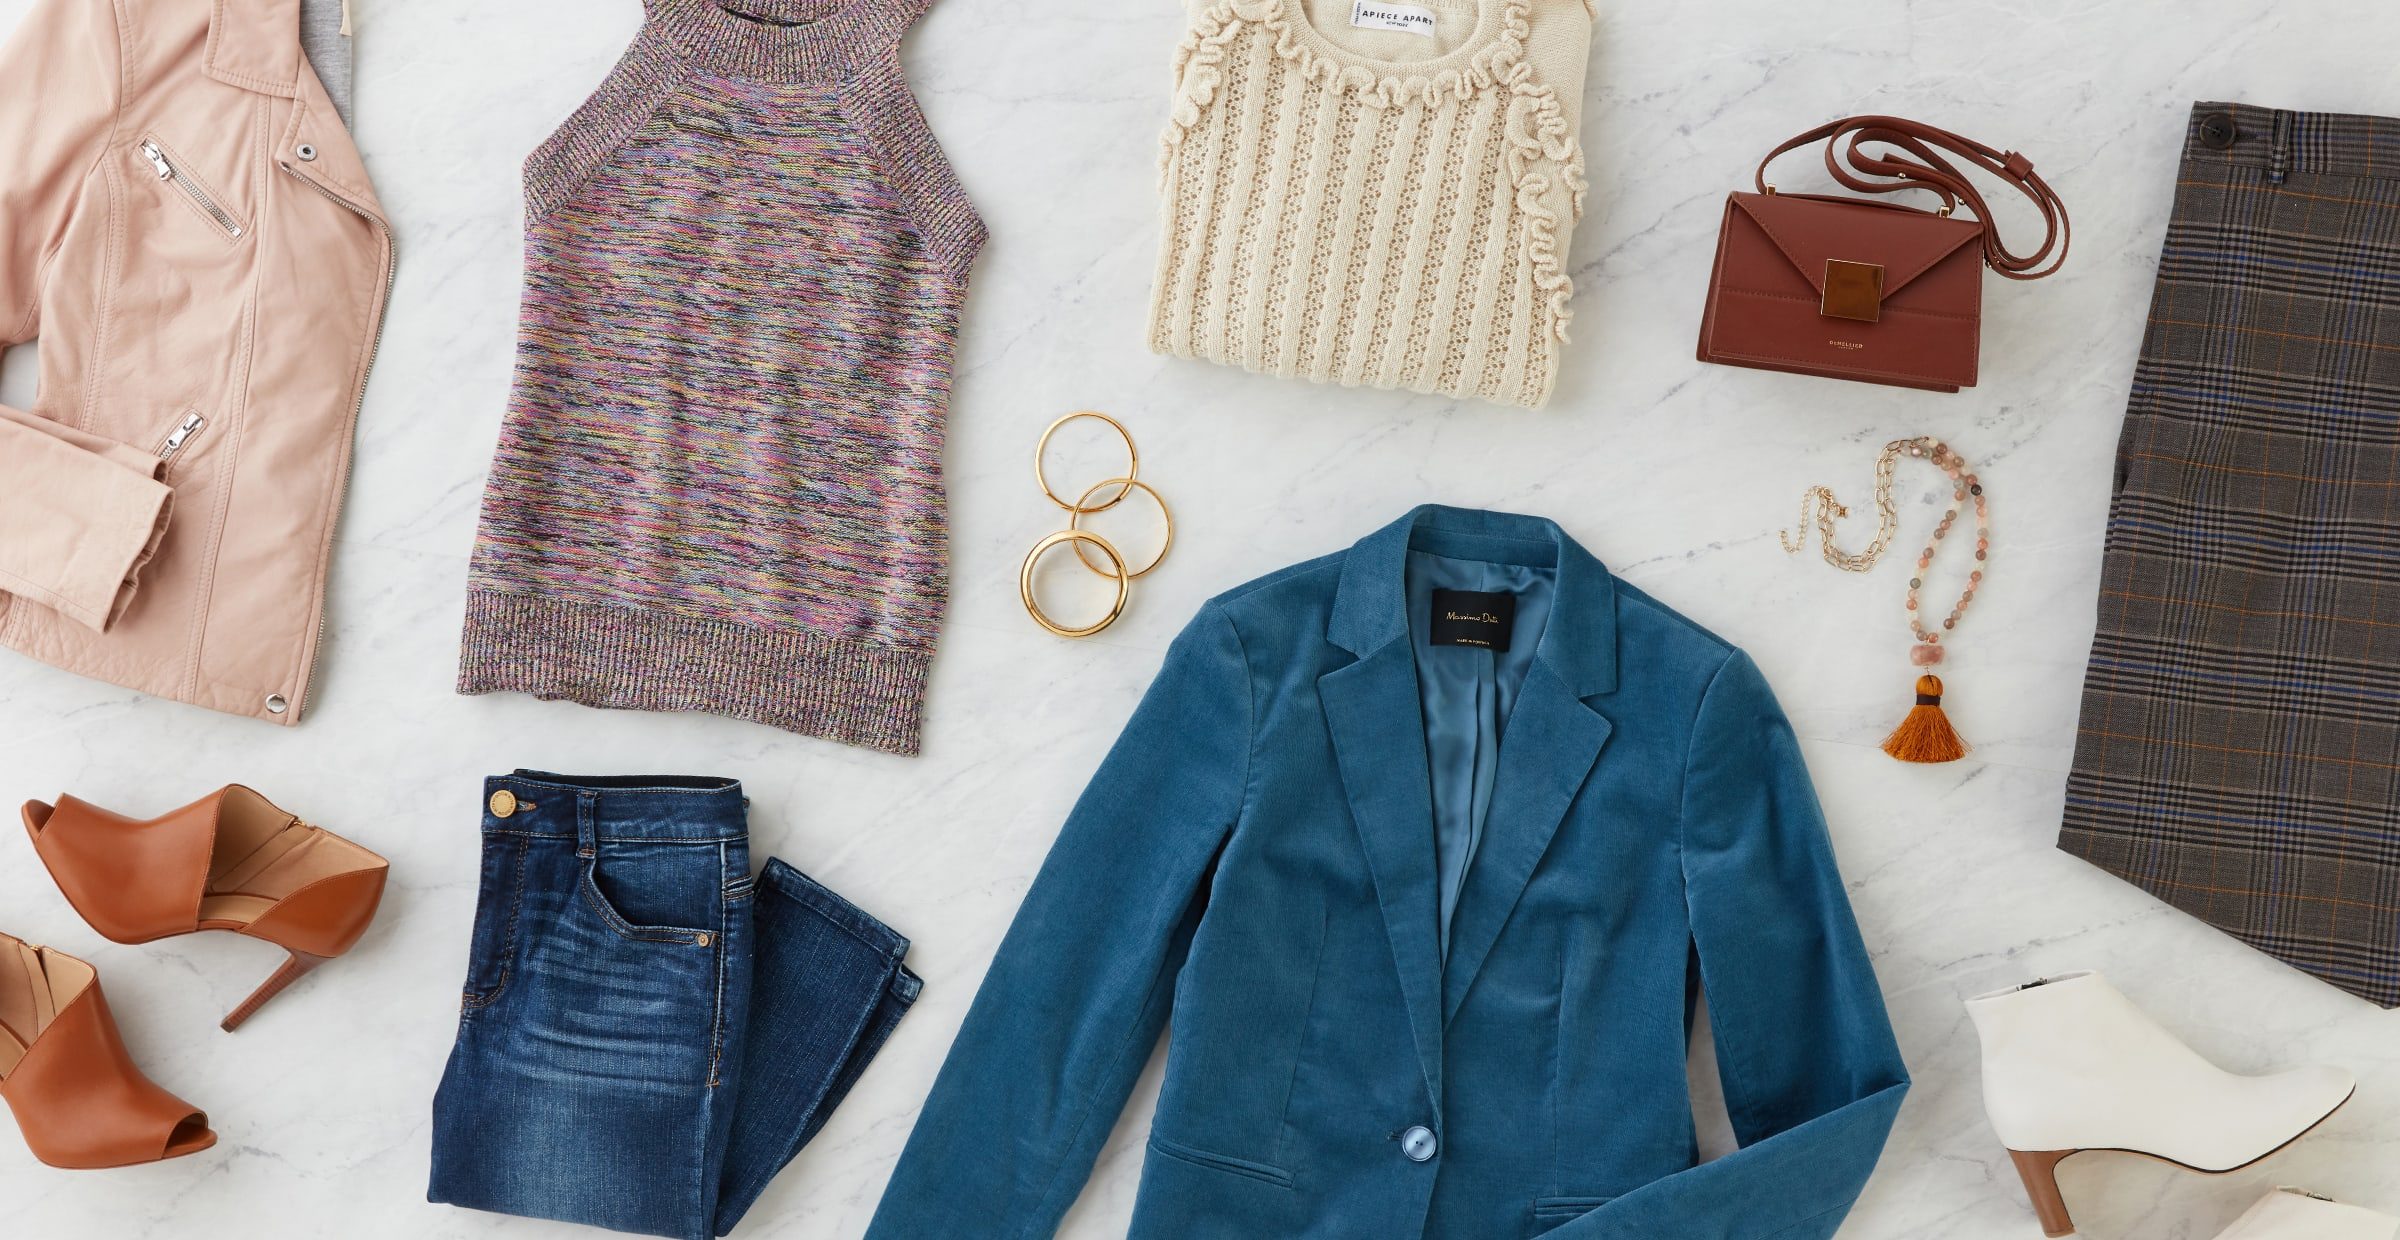 Women's fall clothing essentials